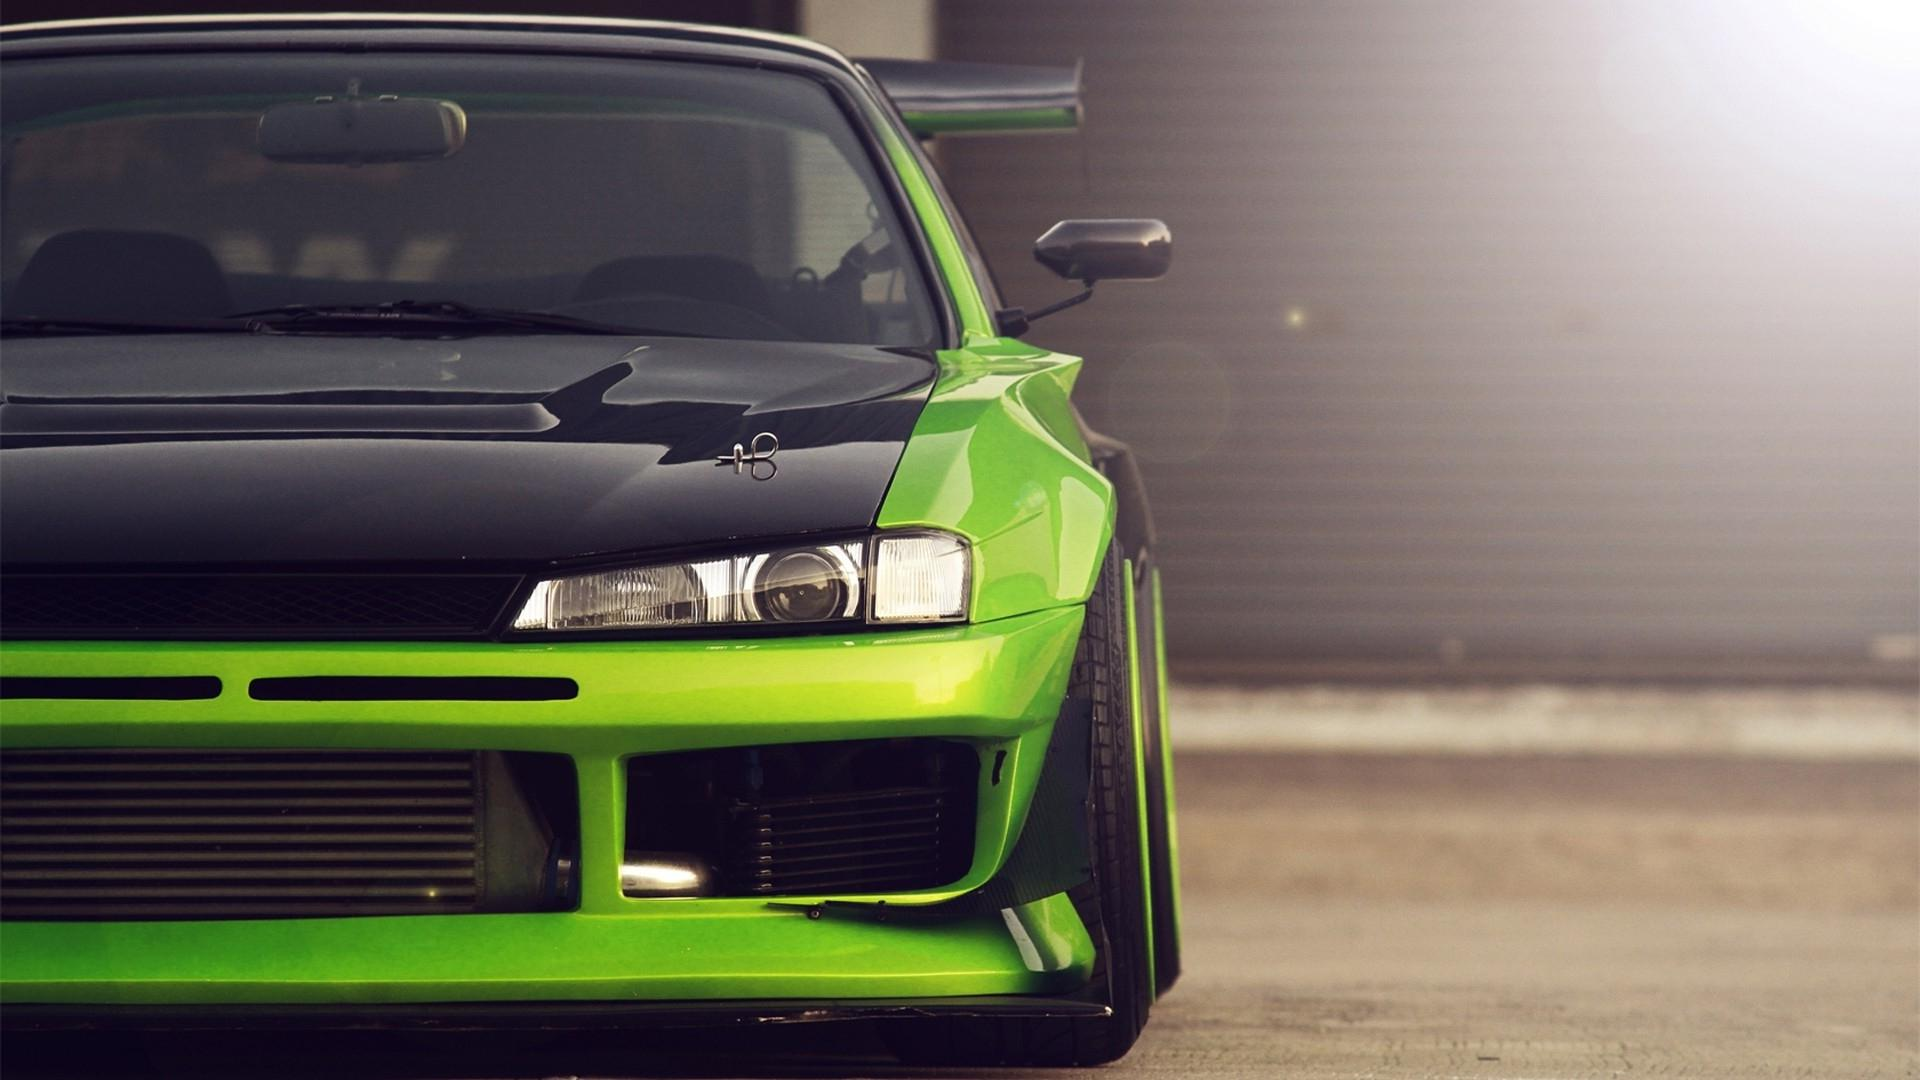 nissan-silvia-s14-wallpaper-stock-images-85r06plc